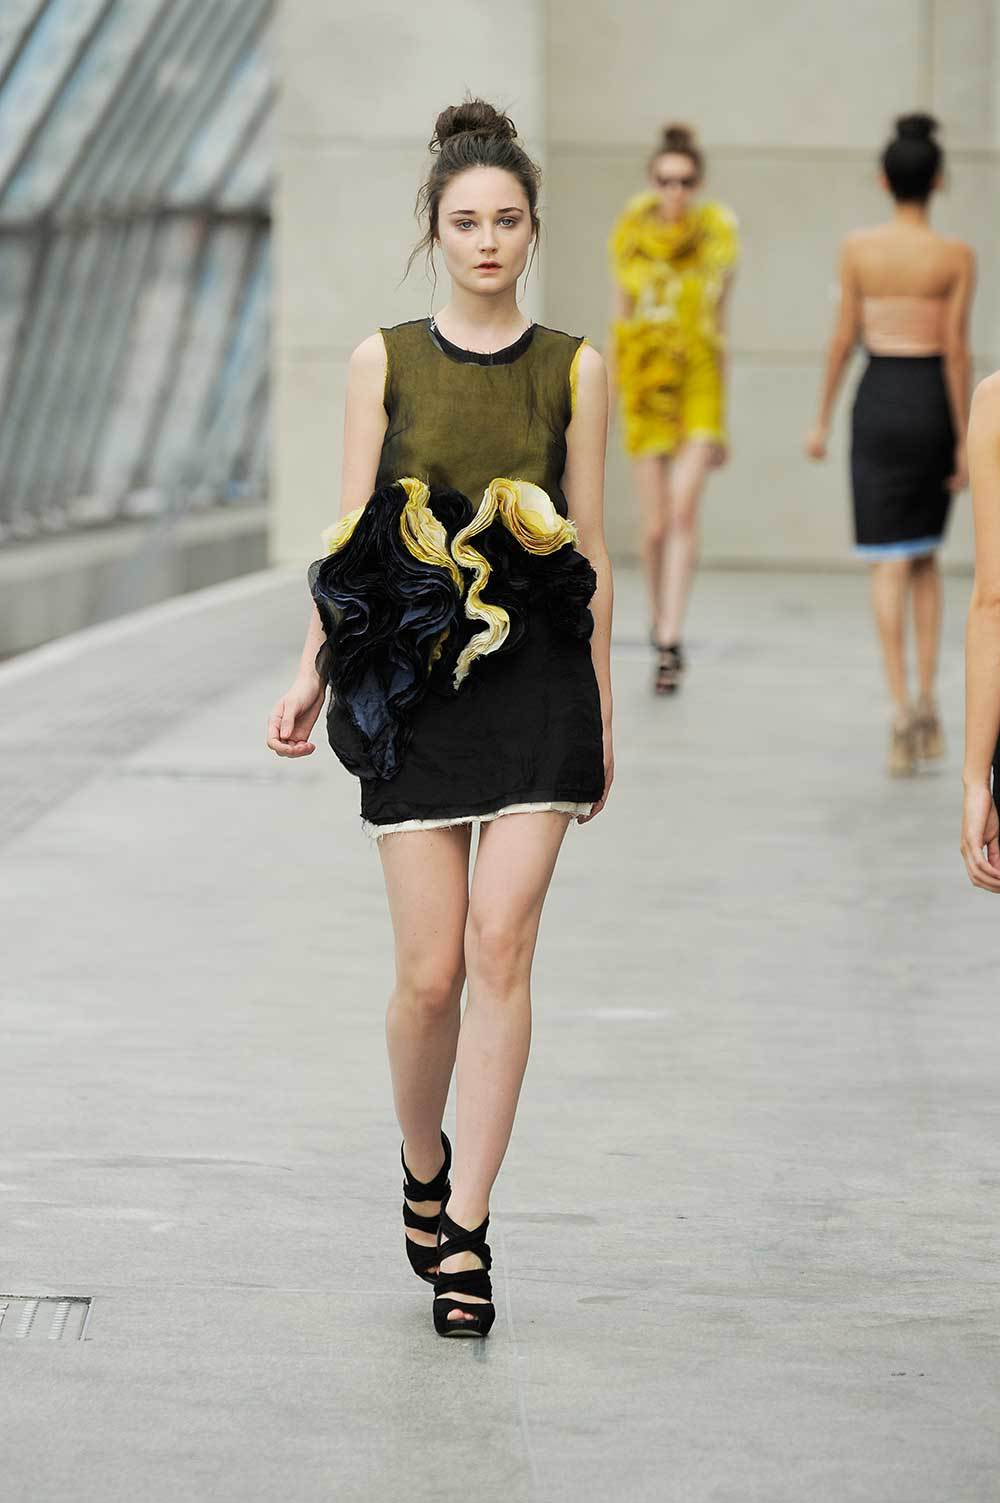 Felicity-Brown-SS11-09-Mustard-Silk-Layered-Tee-&-Ruffle-Skirt.jpg